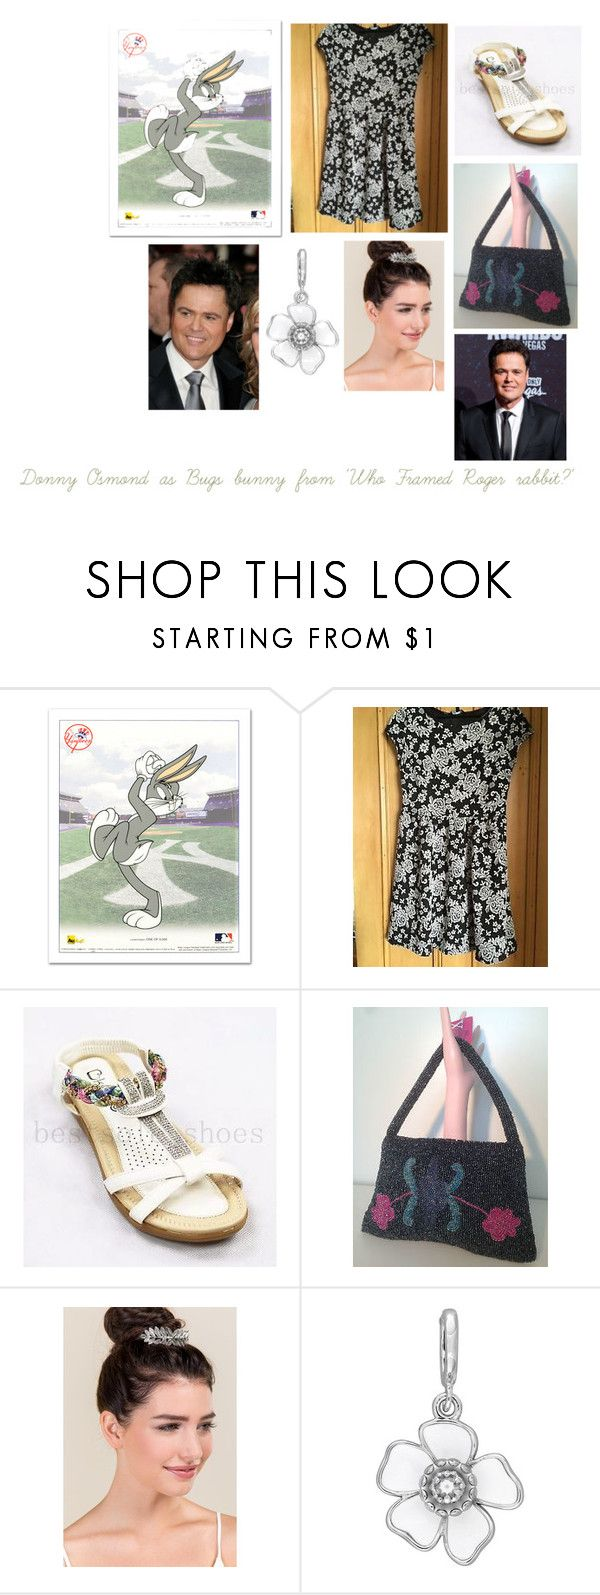 """Disney dream cast: Donny Osmond as Bugs bunny from 'Who framed roger rabbit?'"" by sarah-m-smith ❤ liked on Polyvore featuring Francesca's and Laura Ashley"